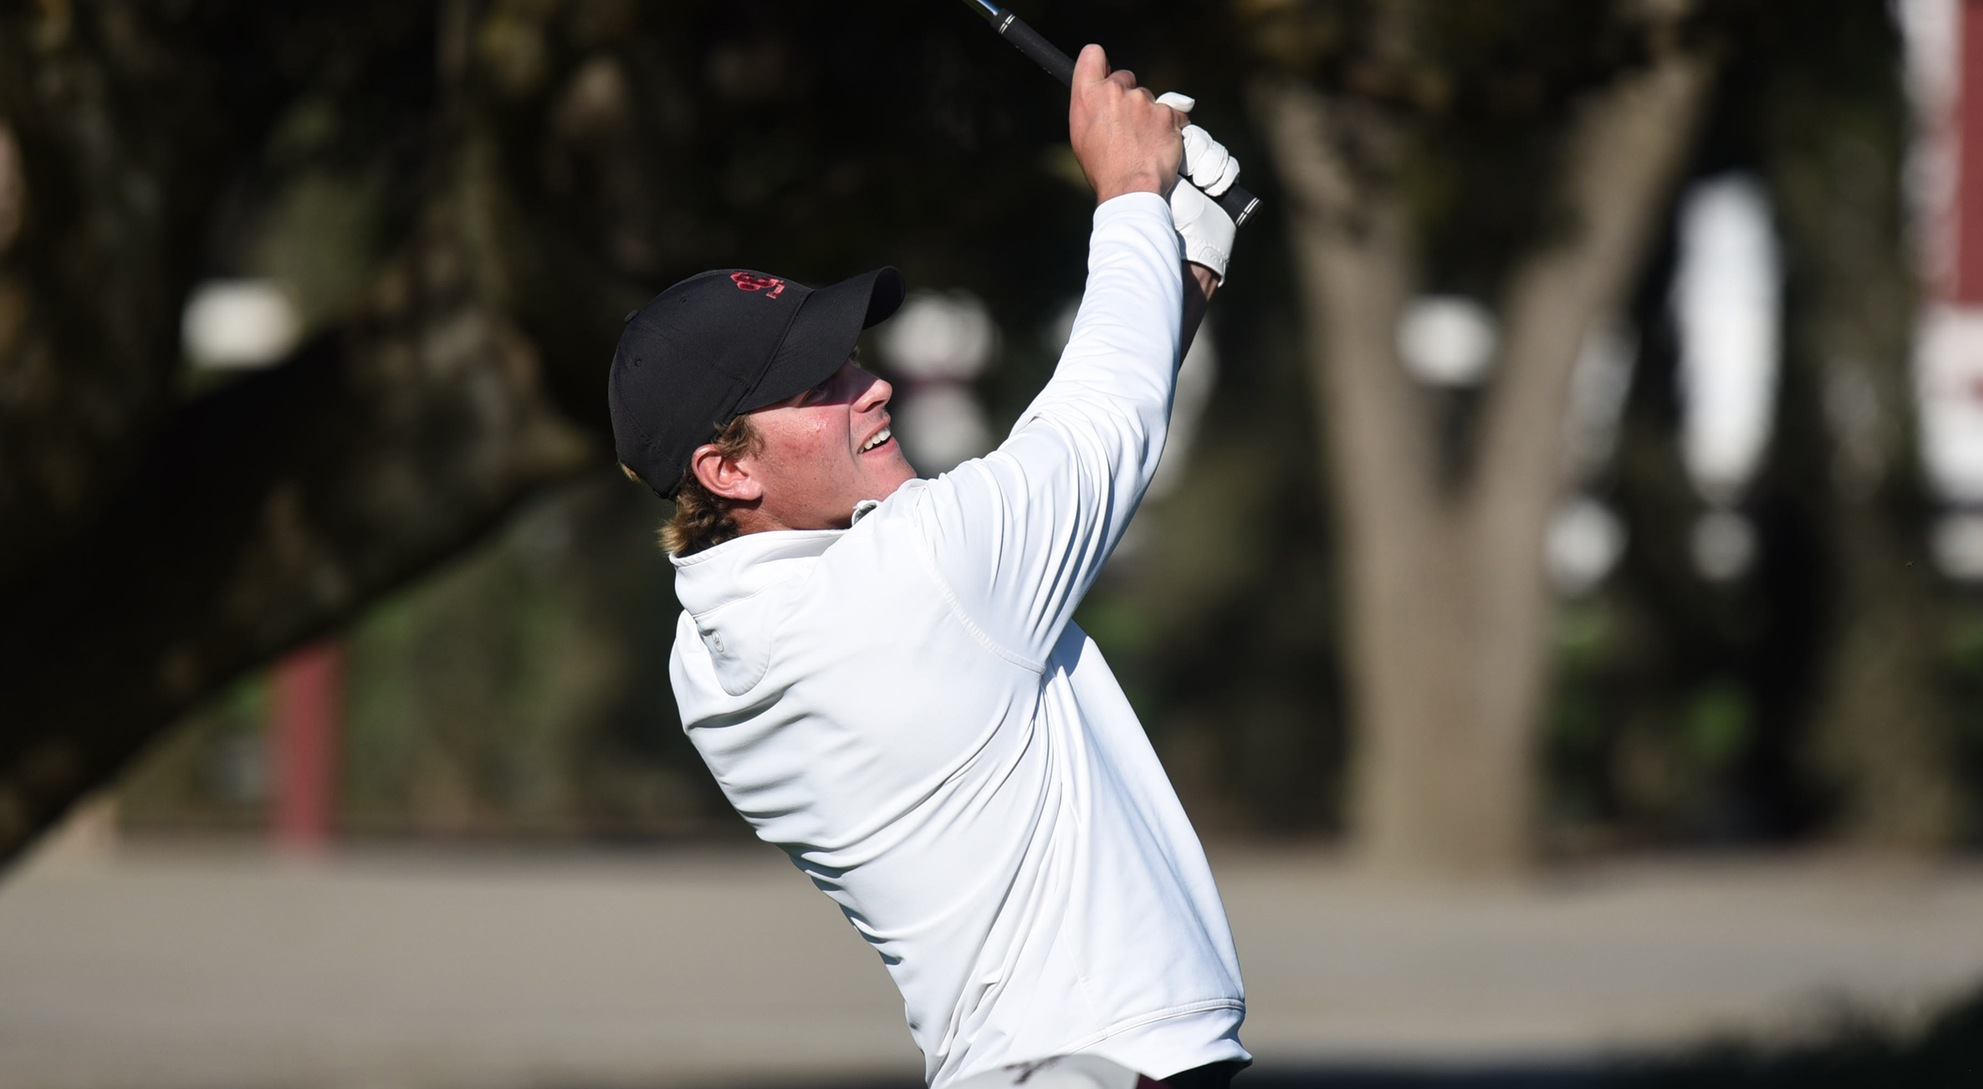 Men's Golf At Cowboy Classic Starting Monday